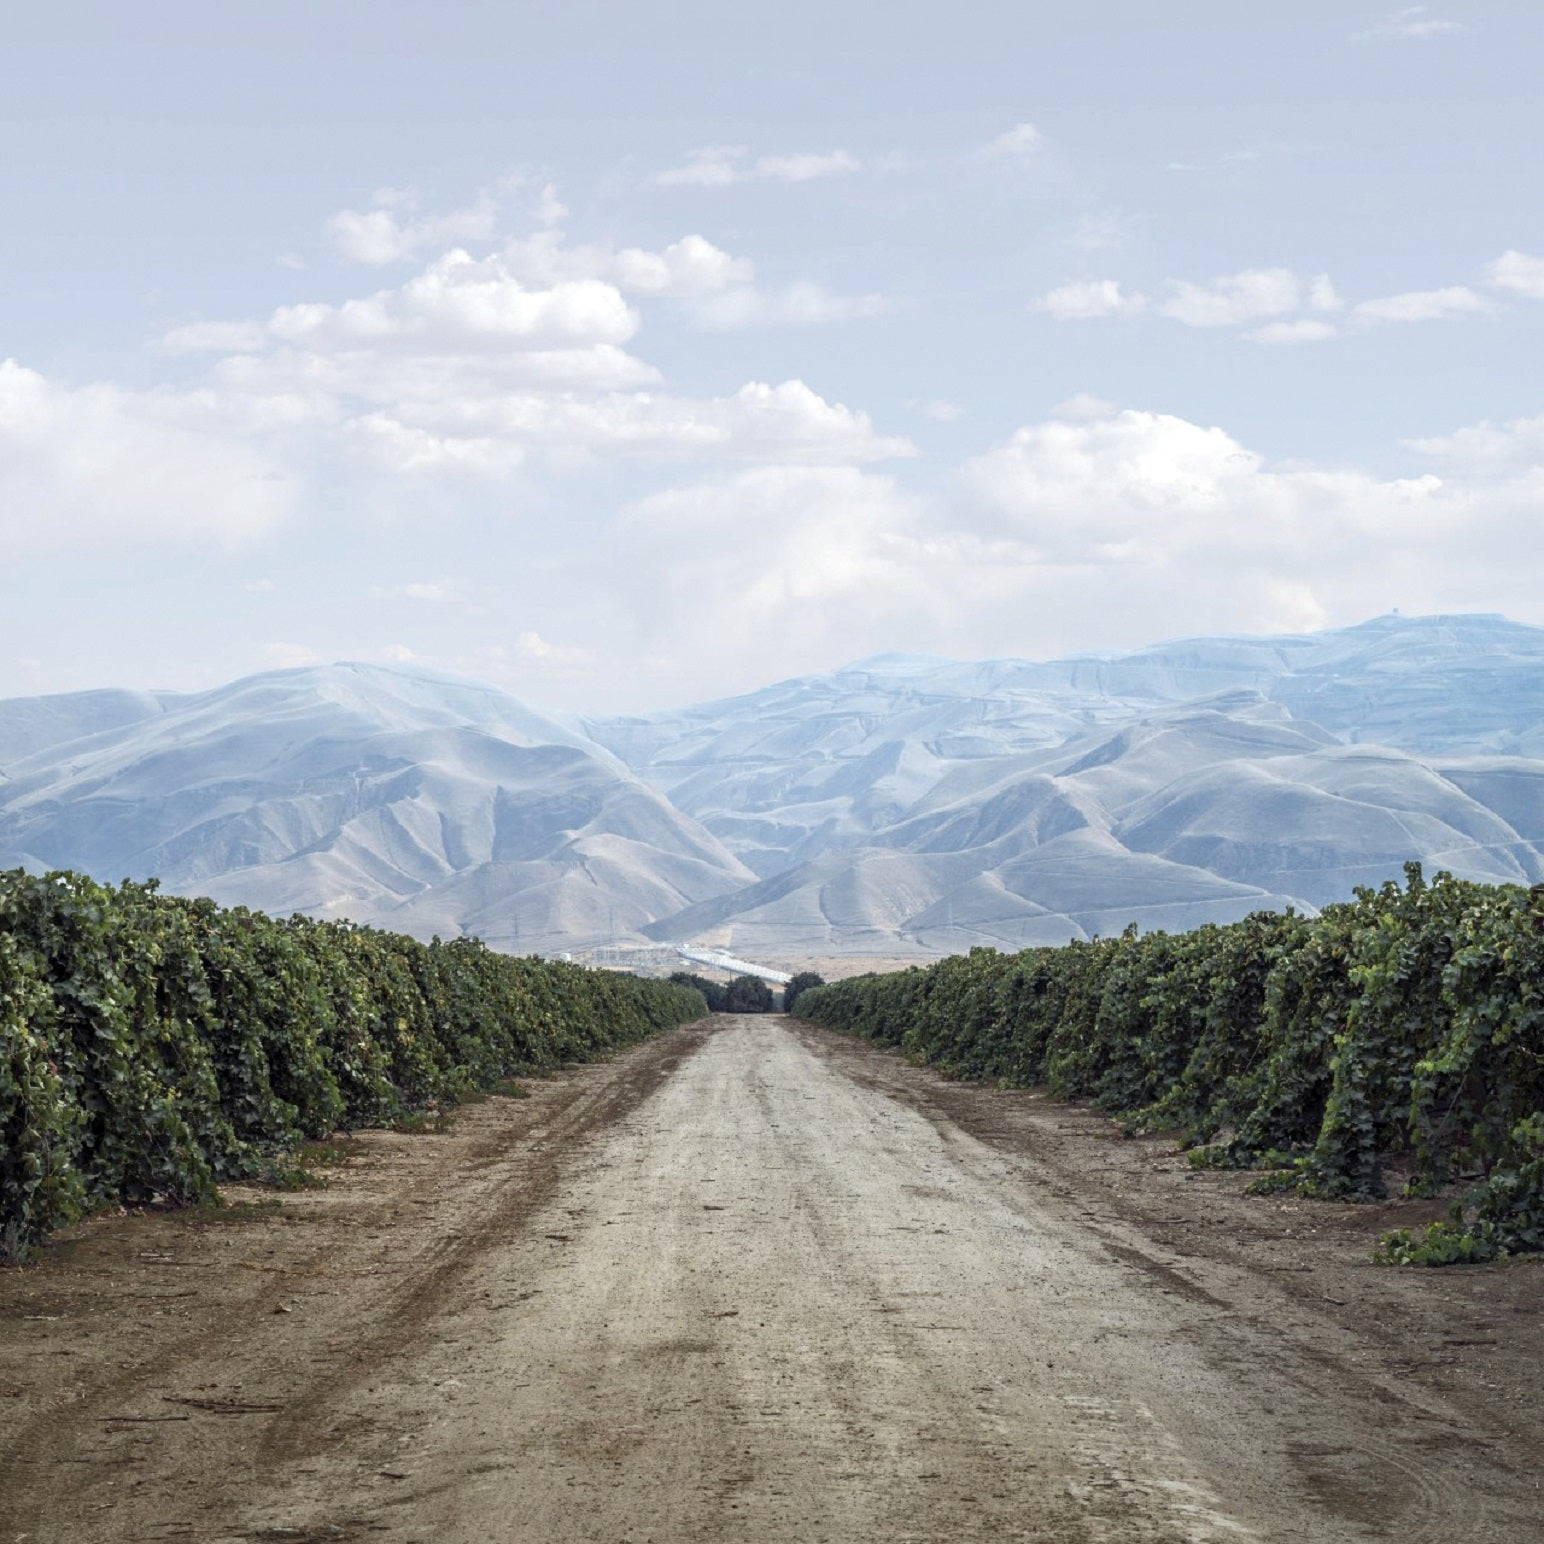 Borders can't control grapes any more than they can control people – some of the best wines emerge when winemakers refuse to follow the rules